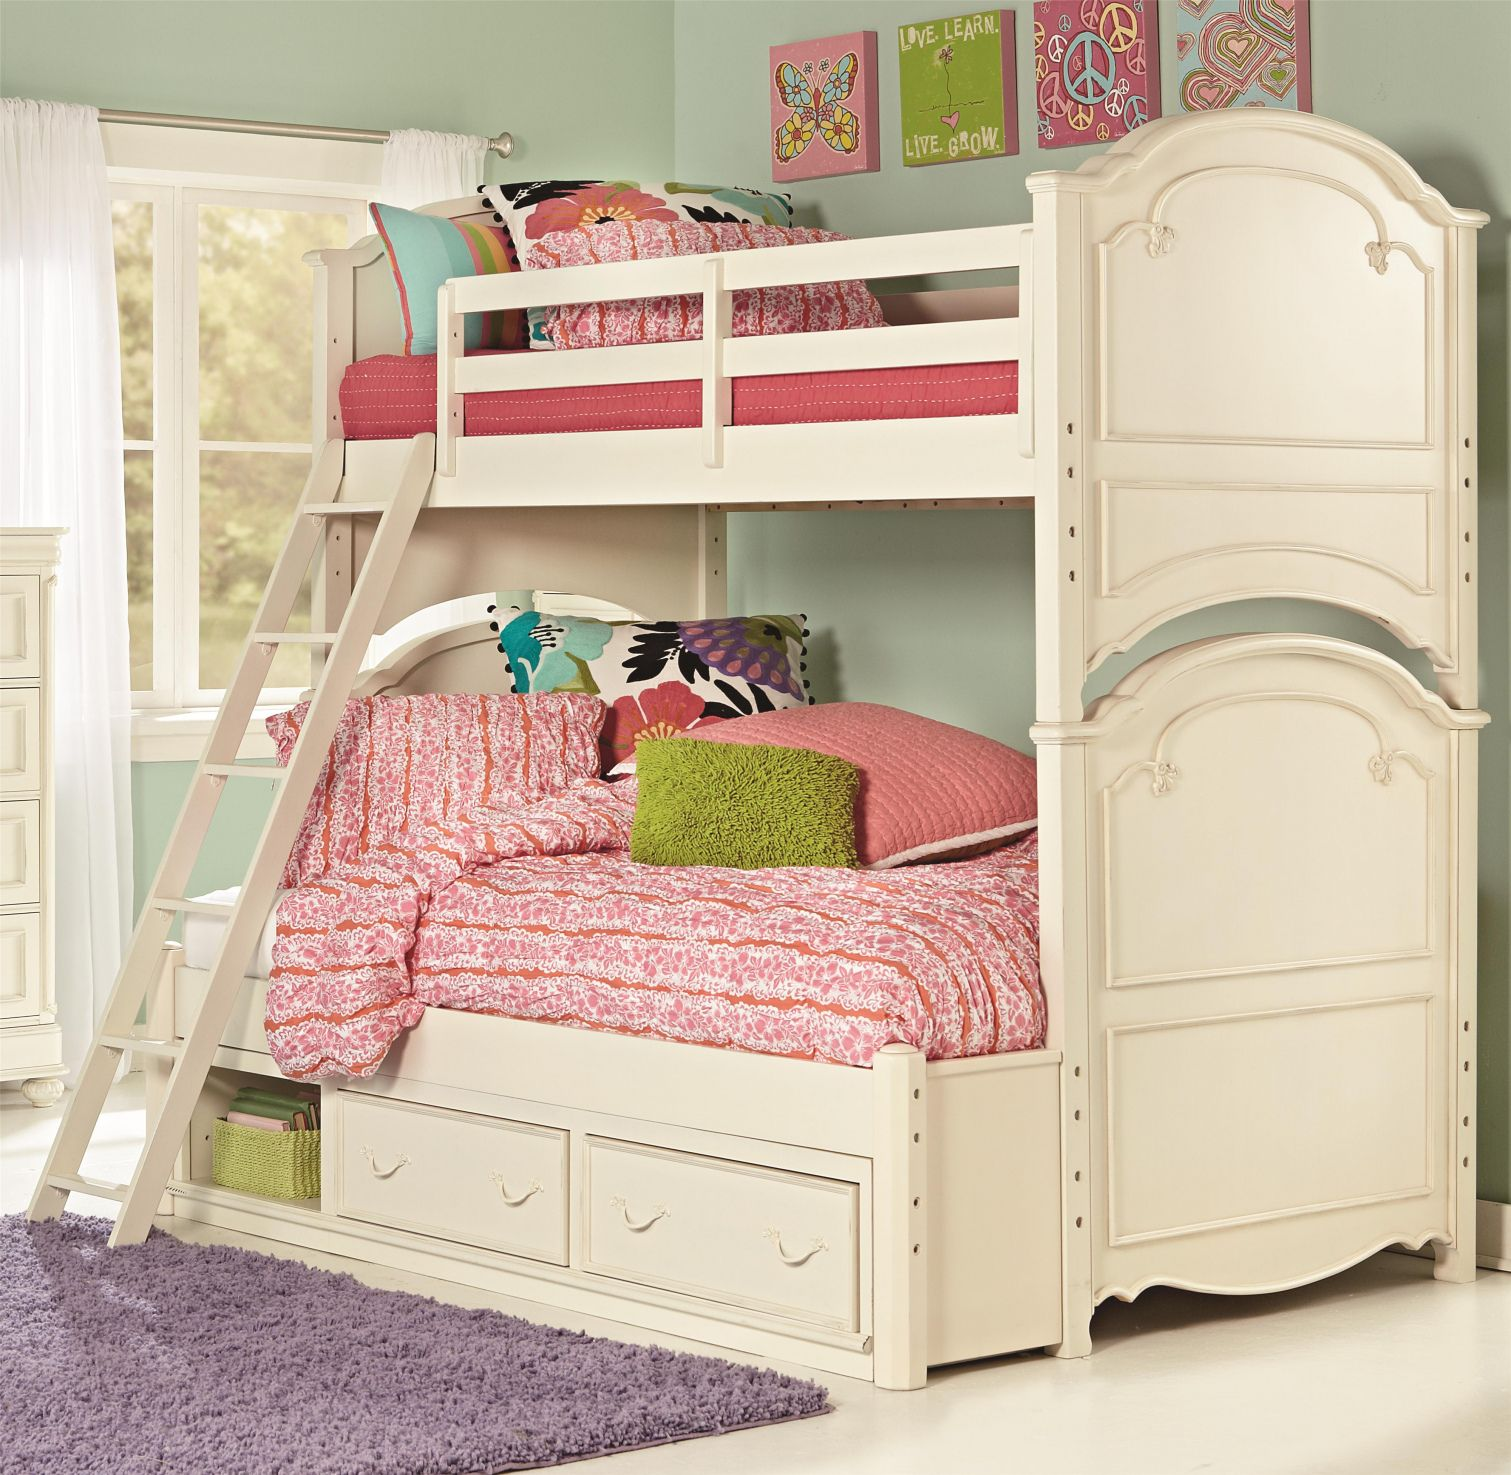 Childrens Twin Bunk Beds - Best Interior Paint Colors Check more at ...